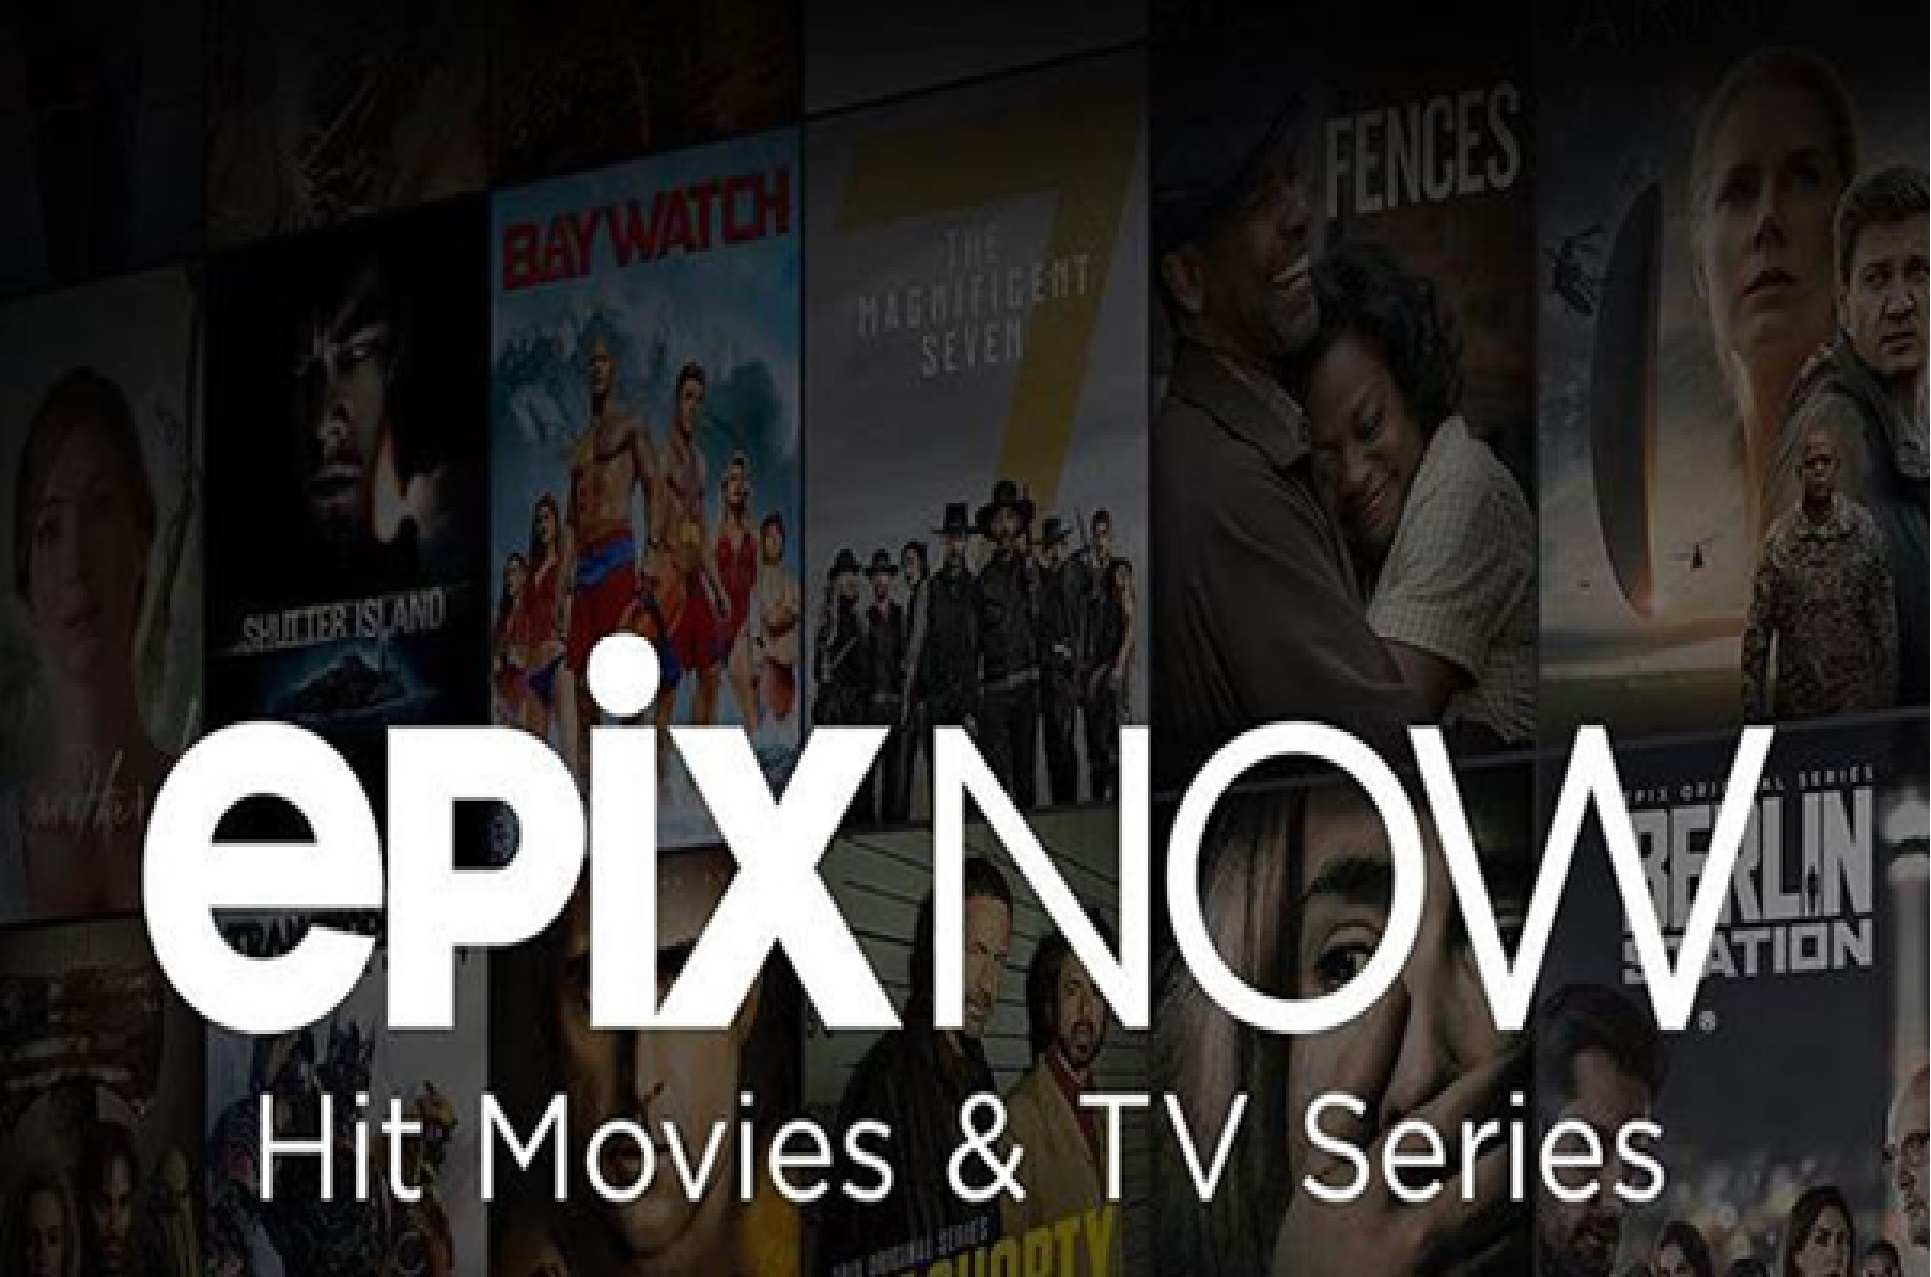 (Easy Guide) to Activate Epix Now at epixnow.com/activate